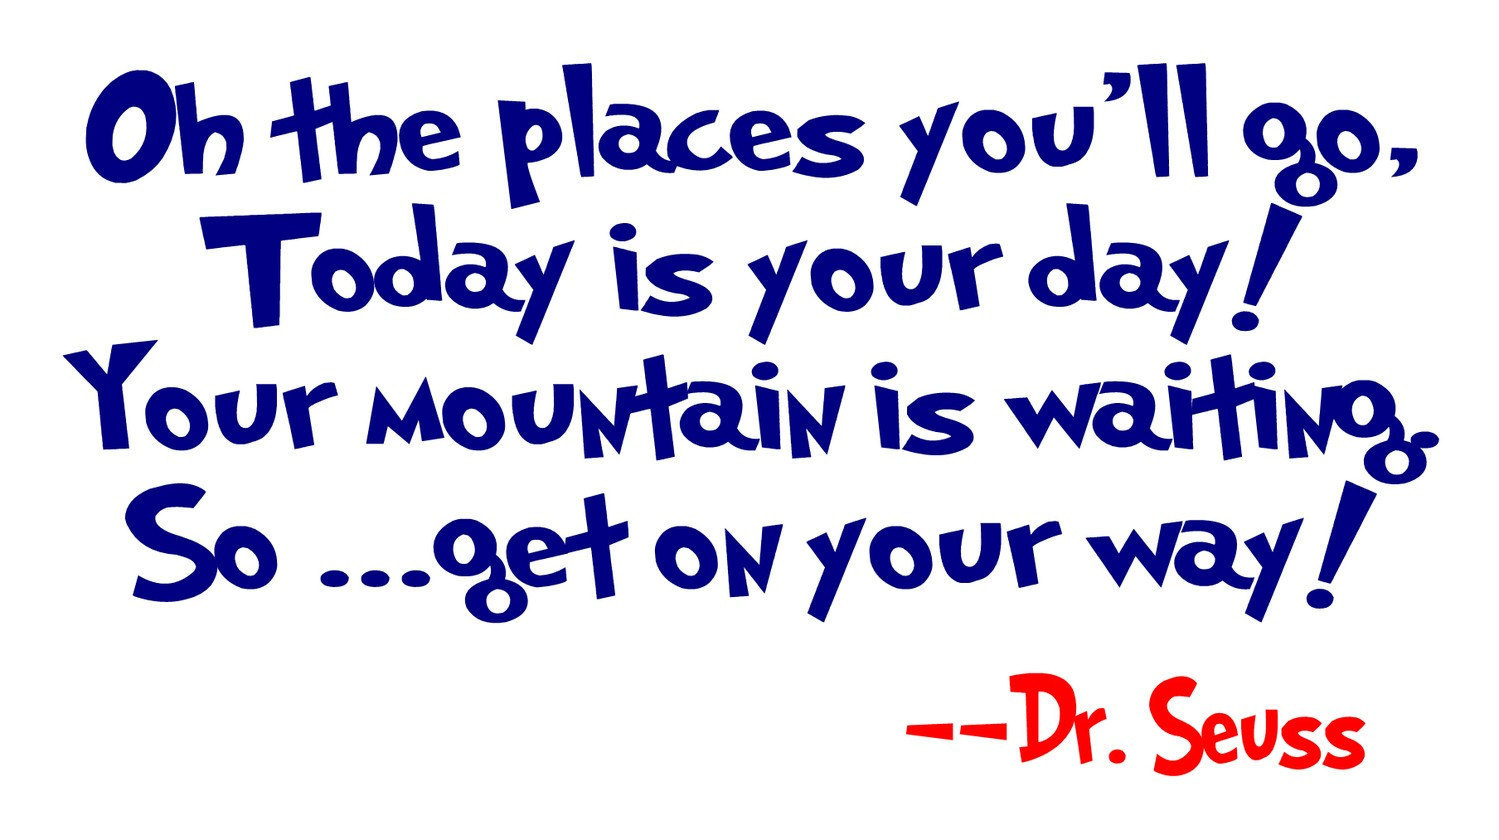 Dr Seuss Friendship Quotes Funny School Quotes Dr Seuss  The Best Collection Of Quotes